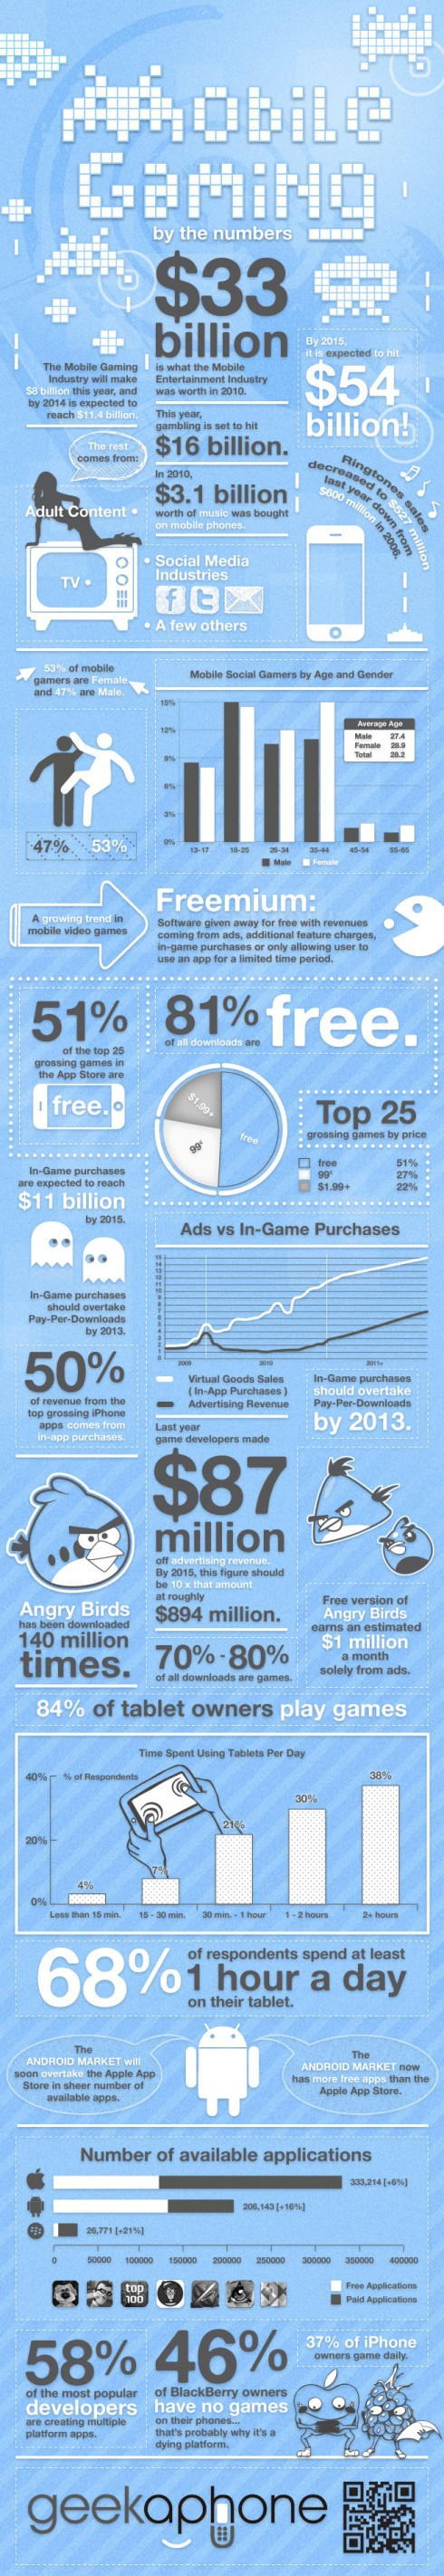 Mobile Gaming By Numbers